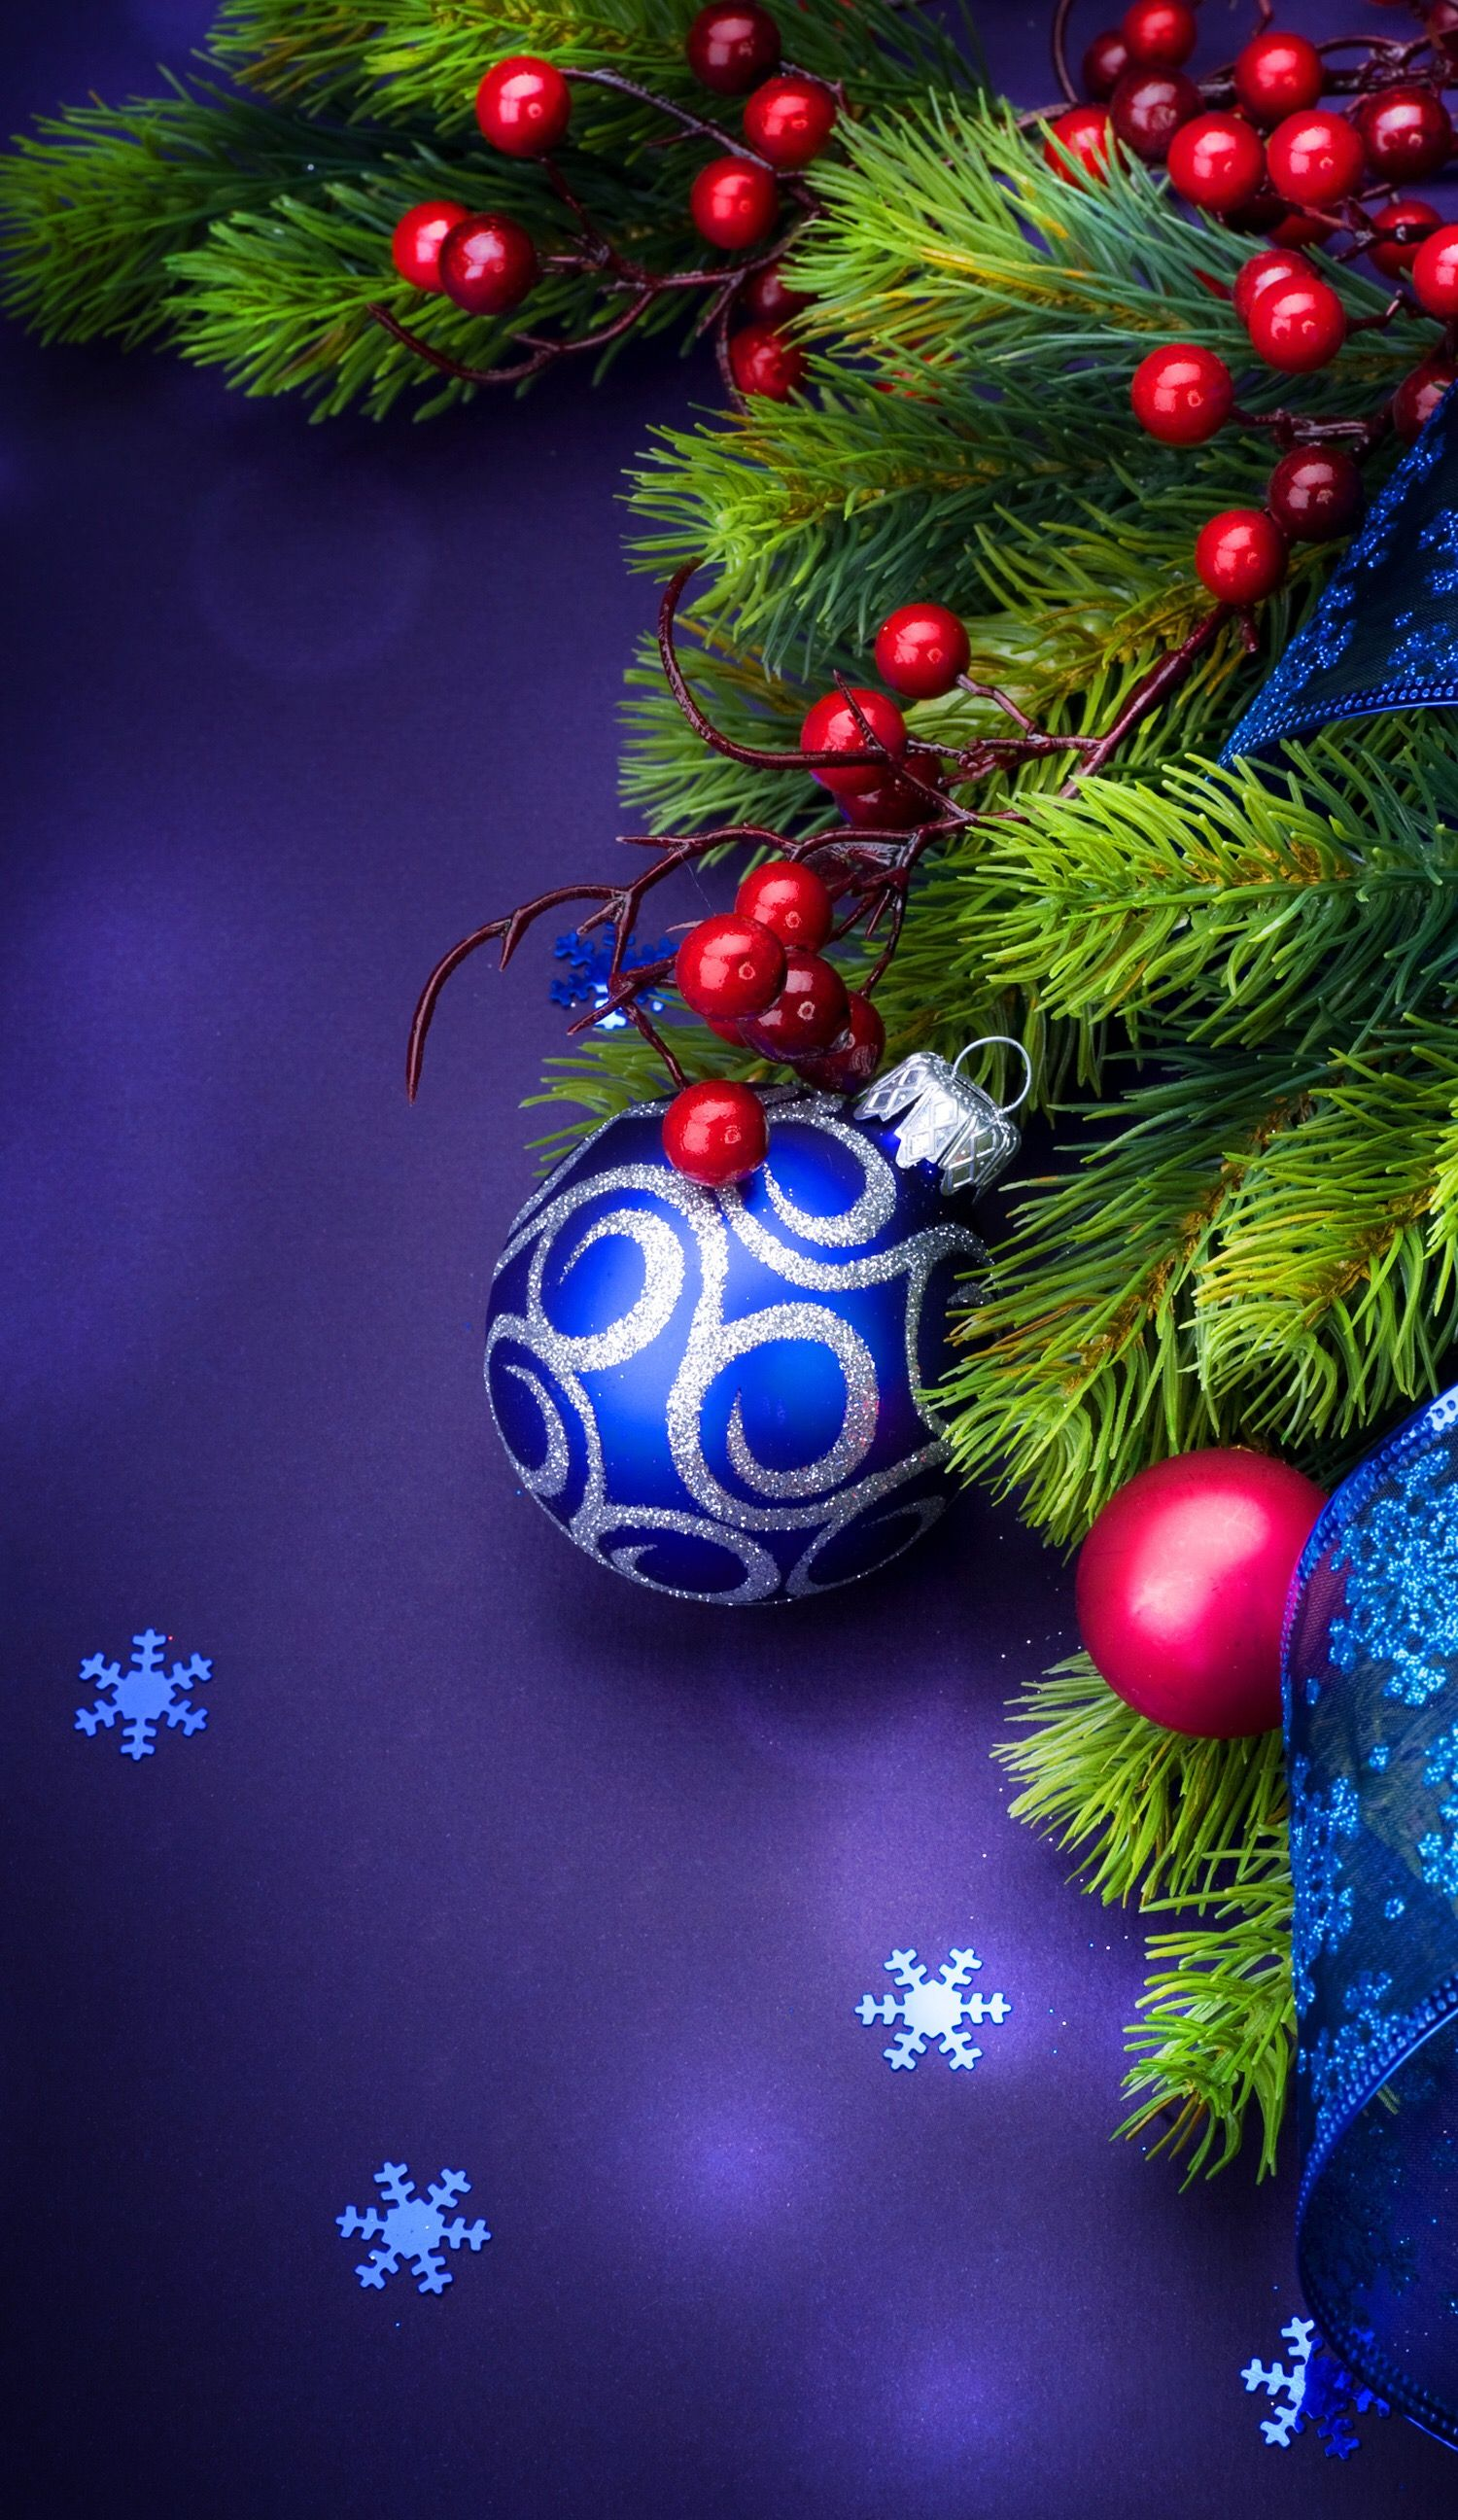 Pin By Steven Bright On New Year Christmas Holidays Wallpapers Christmas Wallpaper Christmas Tree Wallpaper Christmas Live Wallpaper